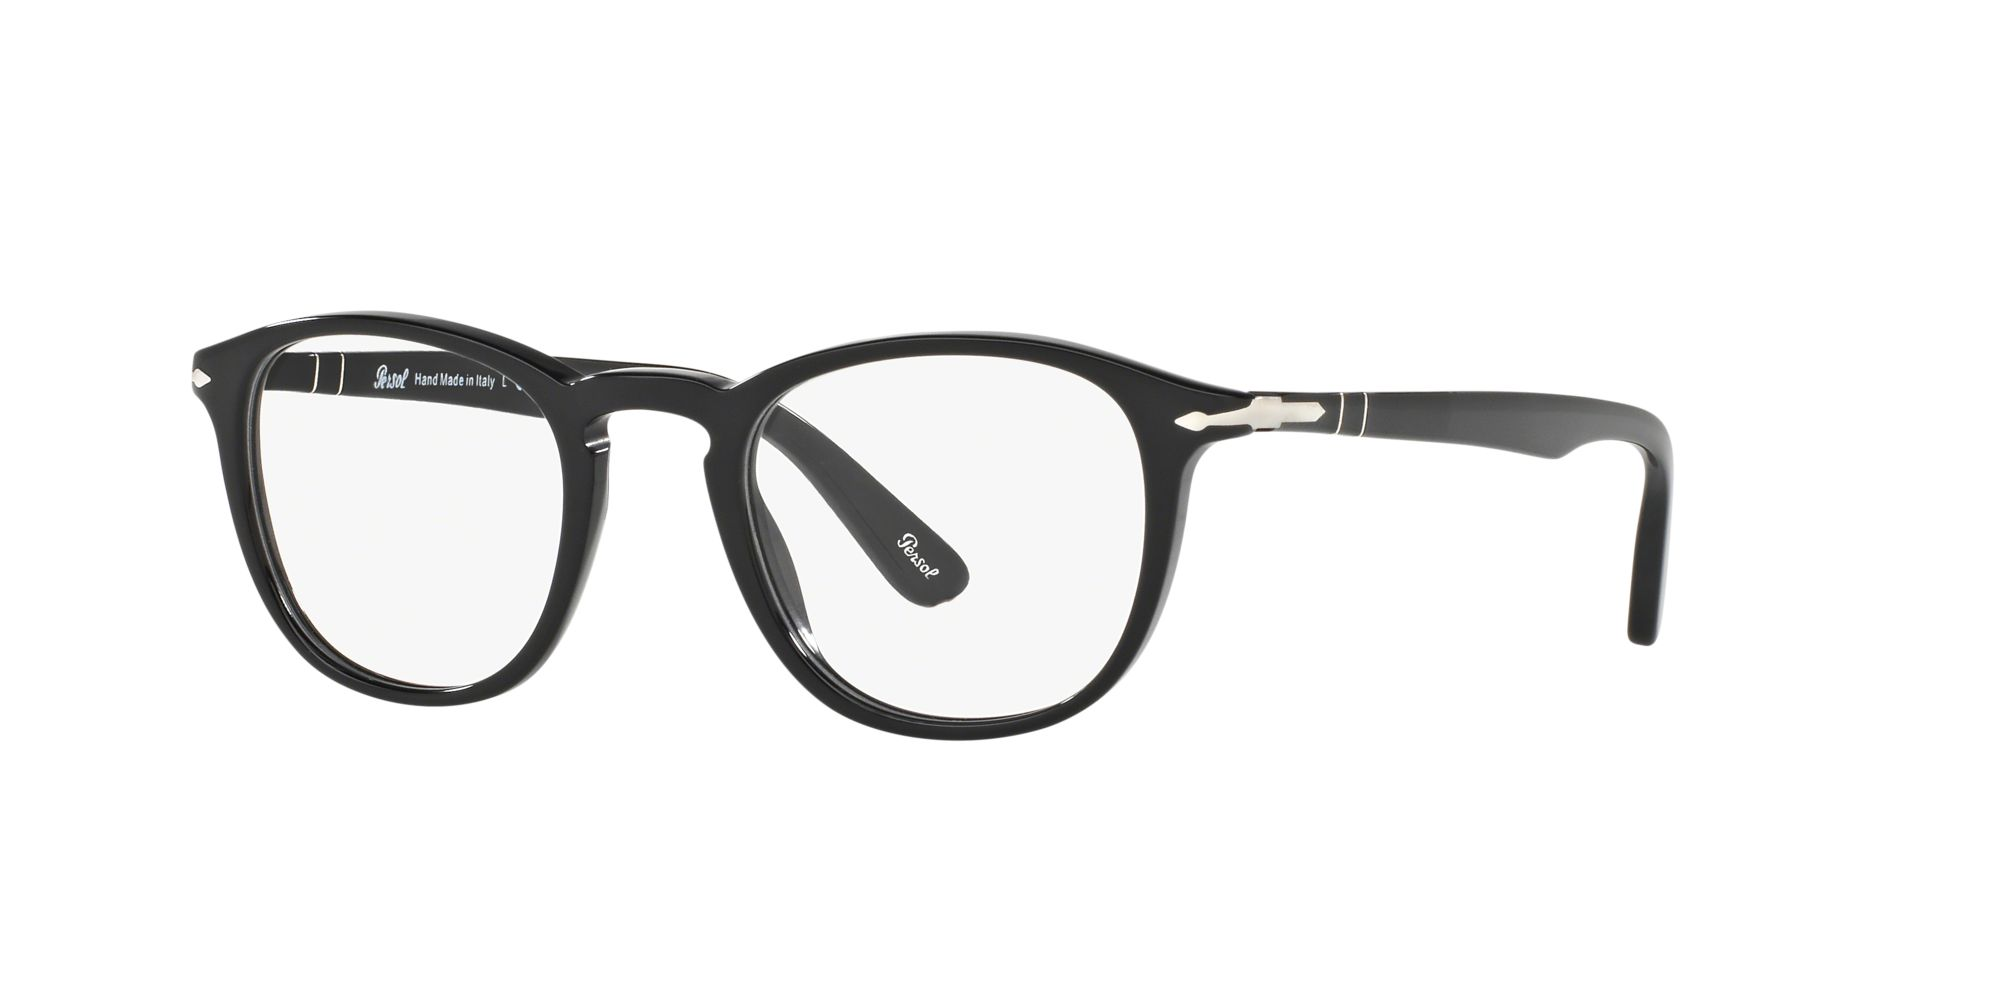 Persol product image